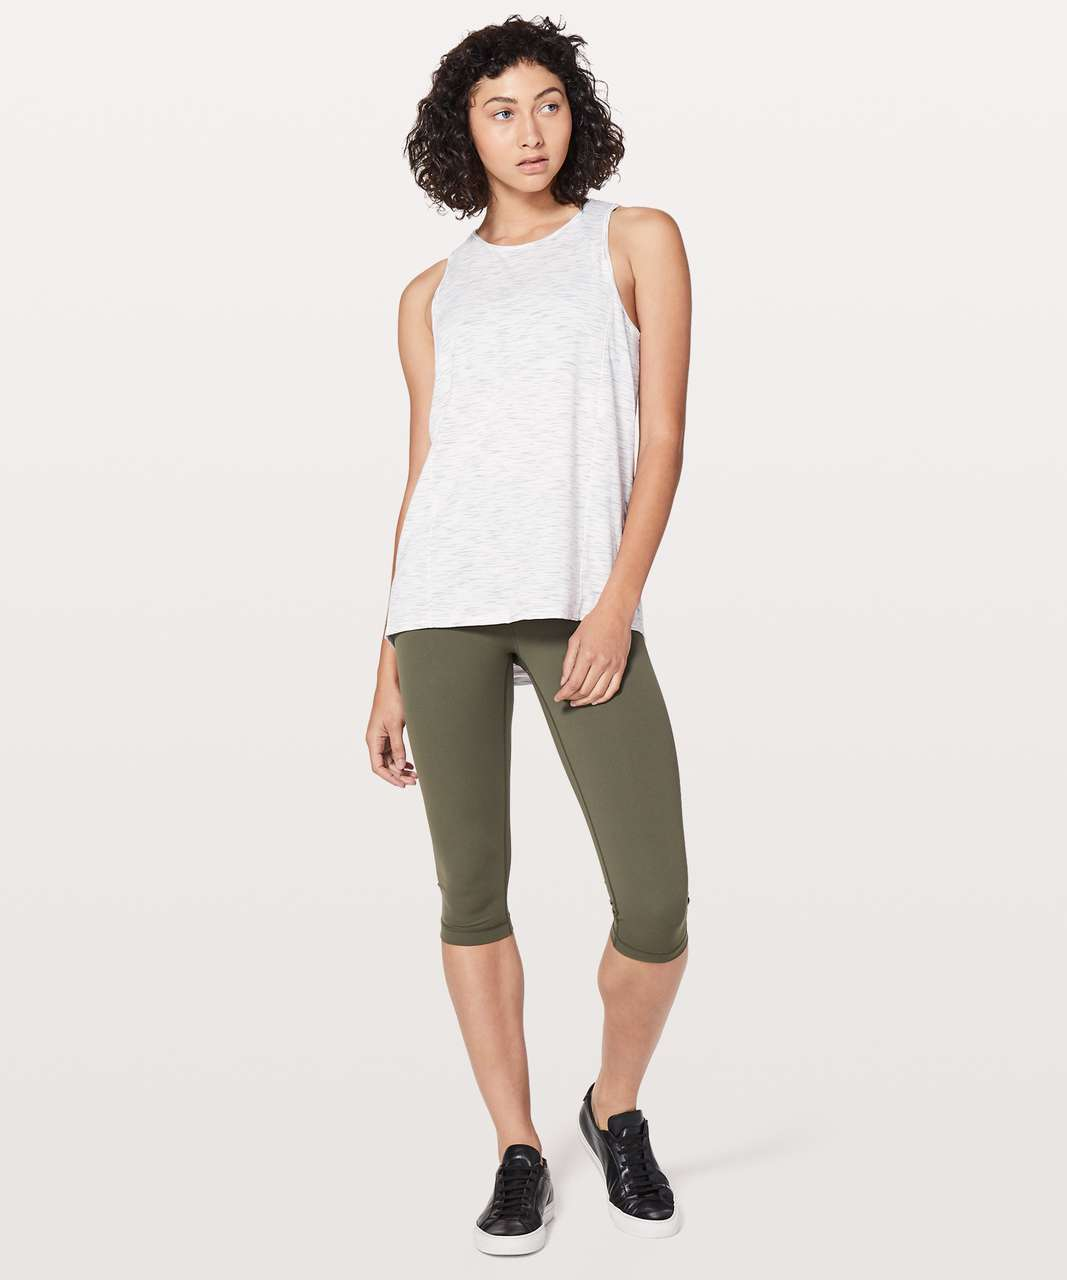 Lululemon Low Key Tank *Silver - Tiger Space Dye Hail White